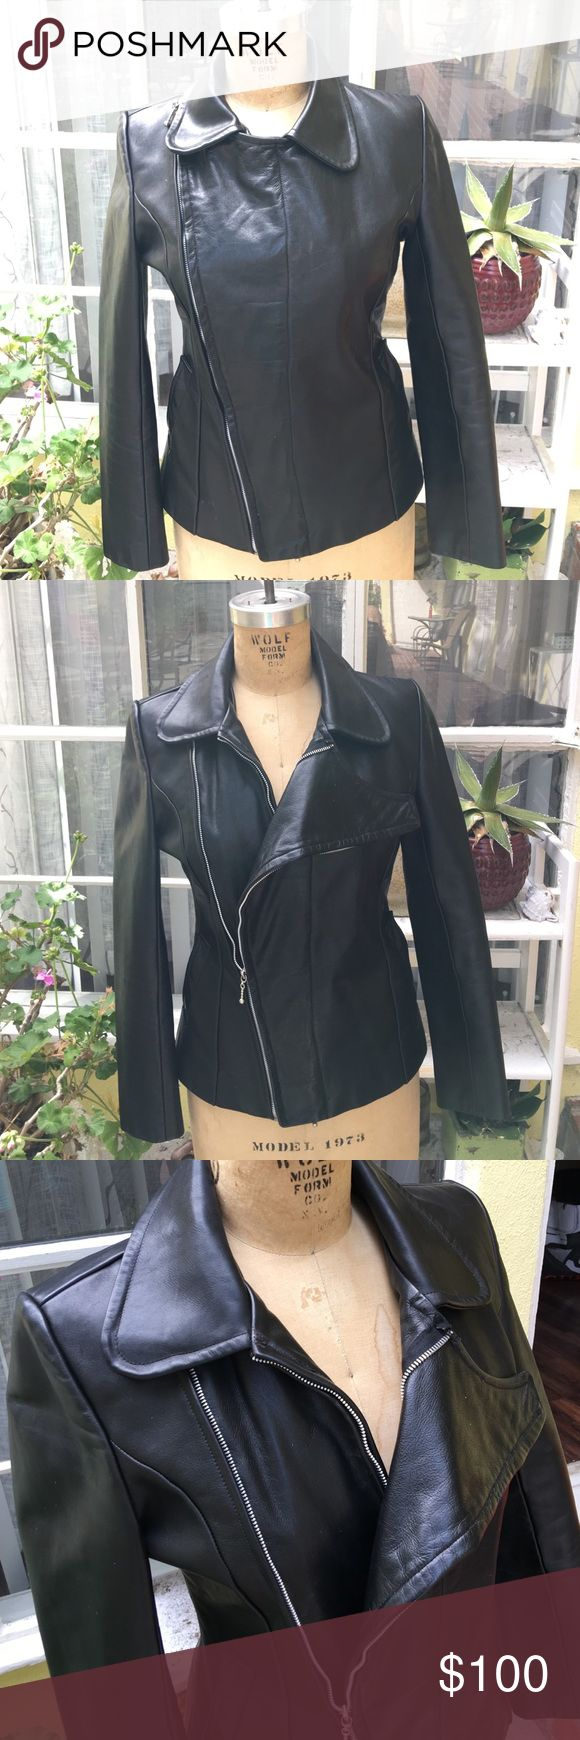 100% Self-designed leather jacket Designed it myself and had it made. Extremely unique, one of a kind. 100% leather. Asymmetrical zipper, double zipper. Almost brand new. Barely worn. Jackets & Coats Utility Jackets